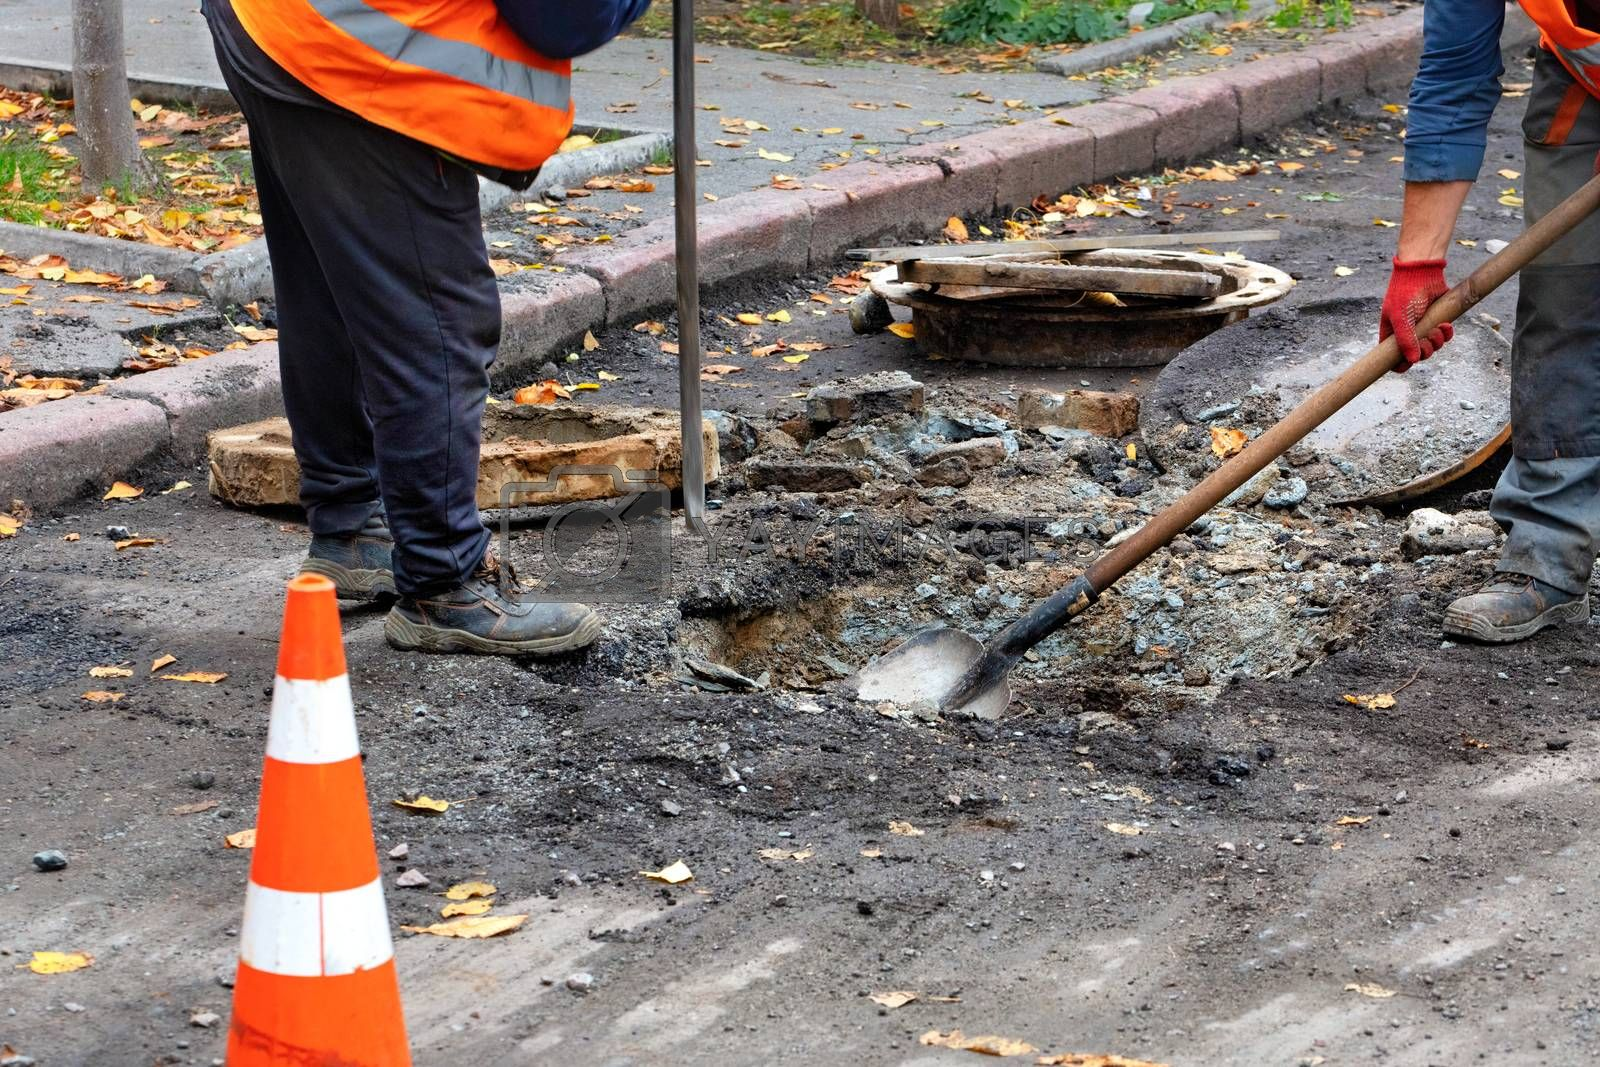 Road workers, dressed in reflective clothing, use a crowbar and a shovel to dismantle an old sewer manhole, copy space.